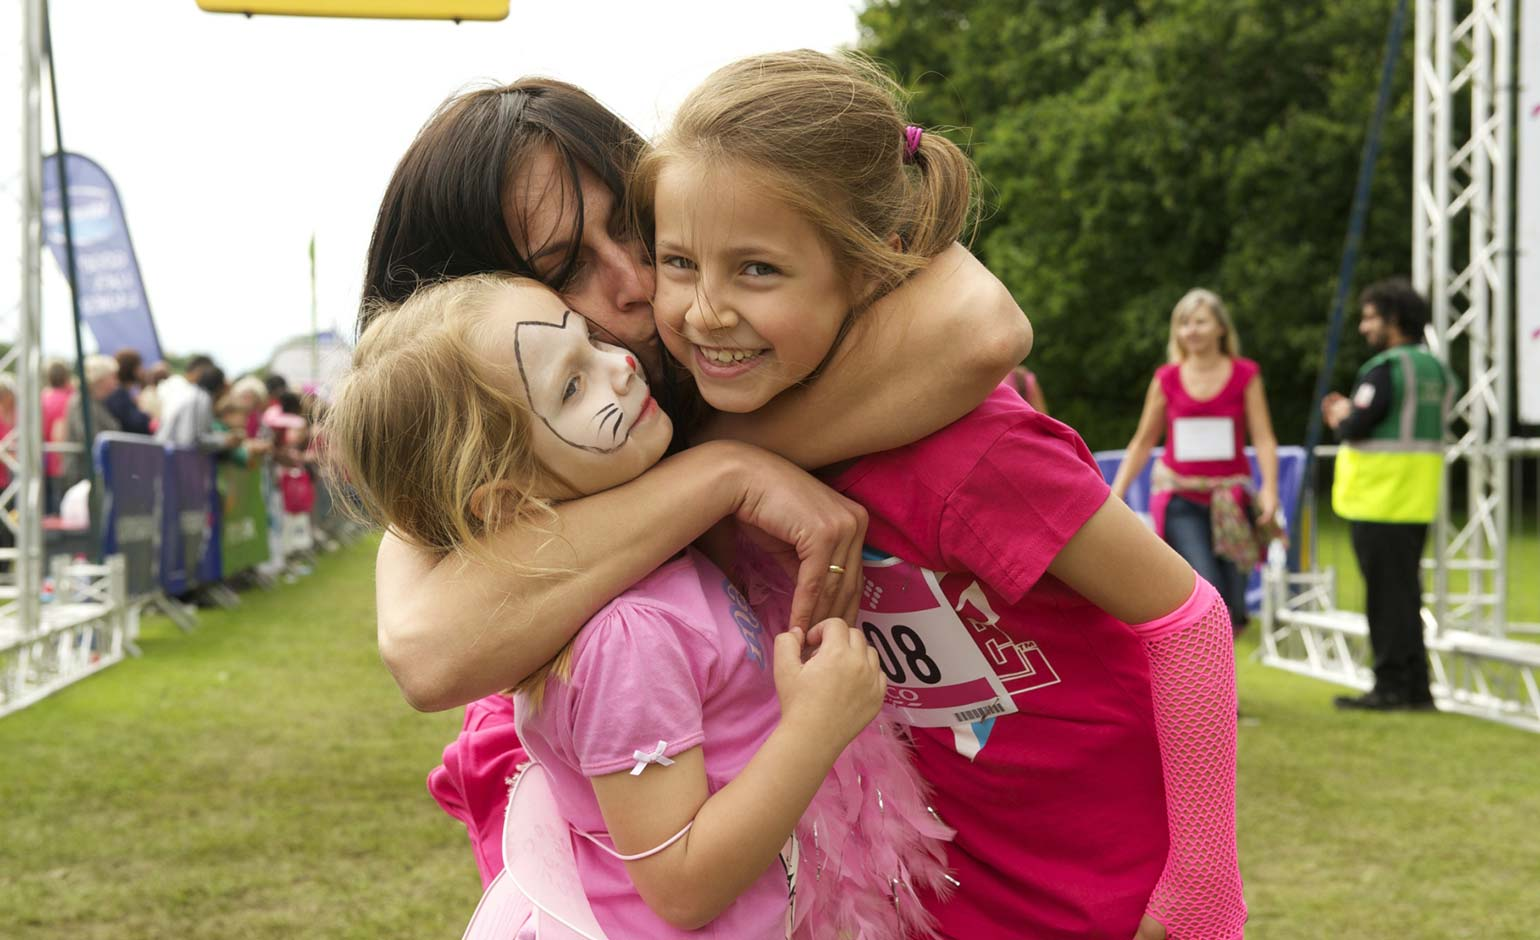 Rescheduled Race for Life event in Bath cancelled as restrictions continue